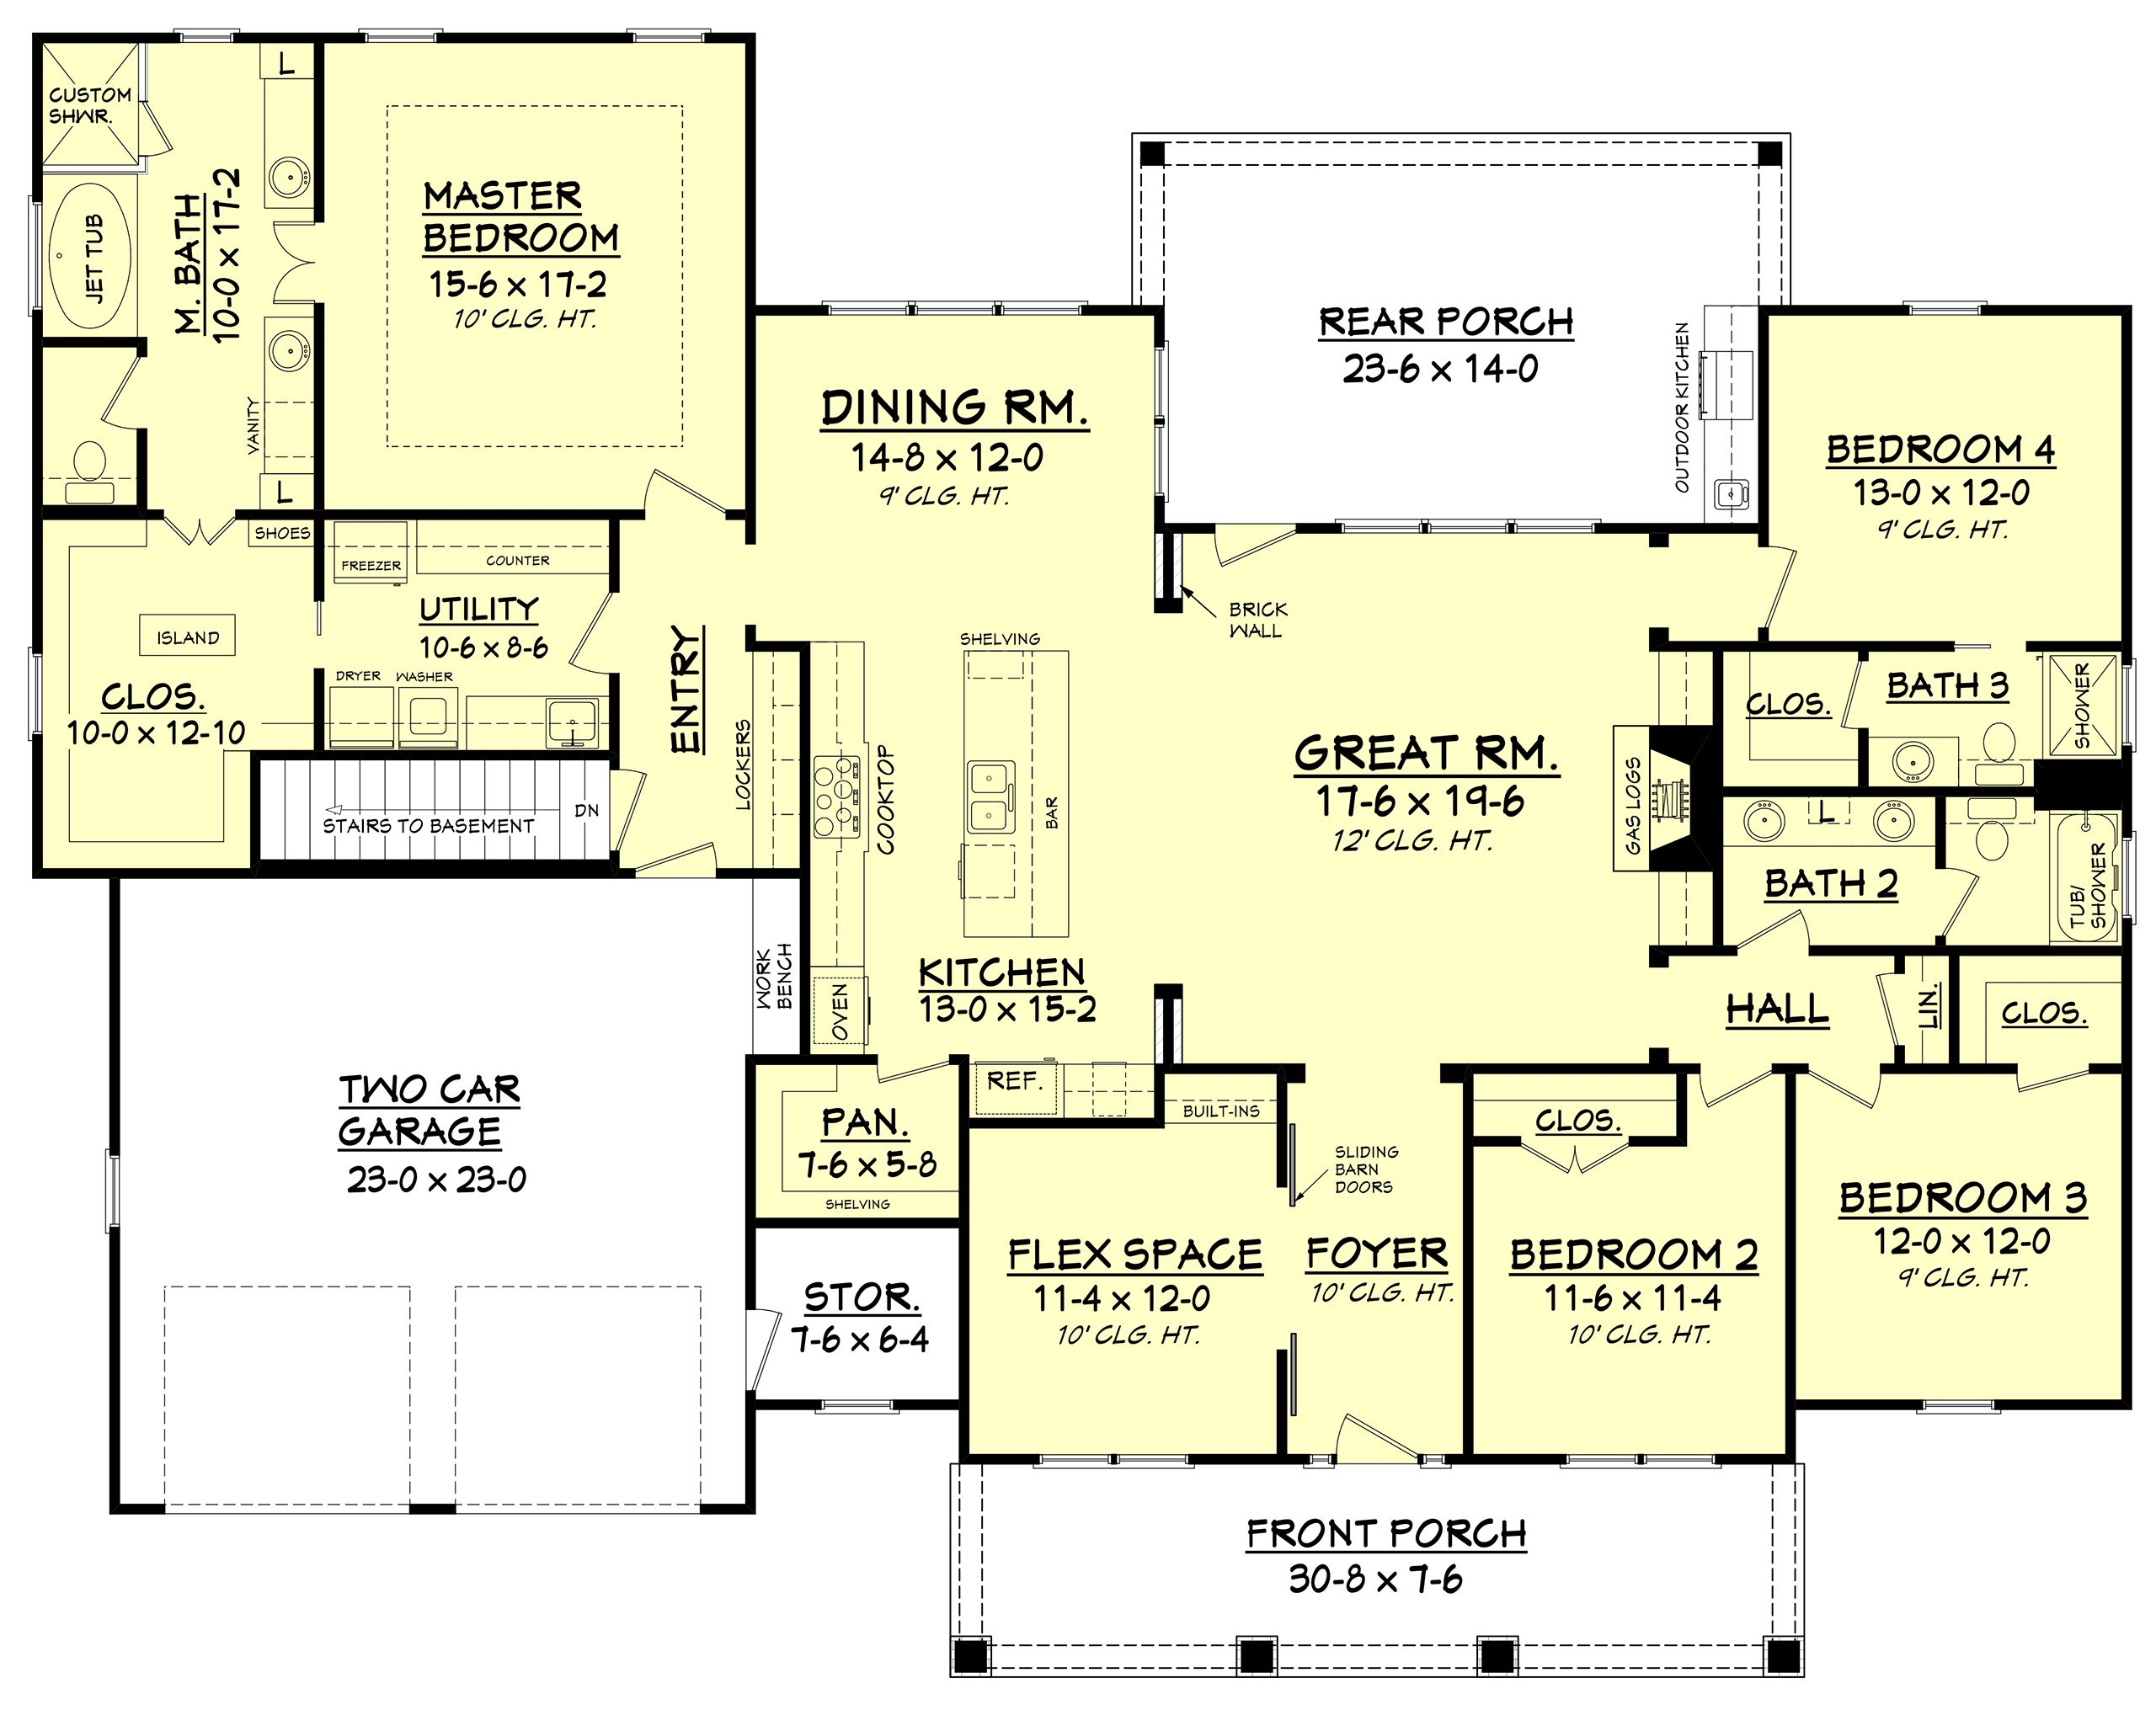 Best Kitchen Gallery: Craftsman Style House Plan 4 Beds 3 00 Baths 2639 Sq Ft Plan 430 of Three Story Modern Ranch Style House Plans on rachelxblog.com